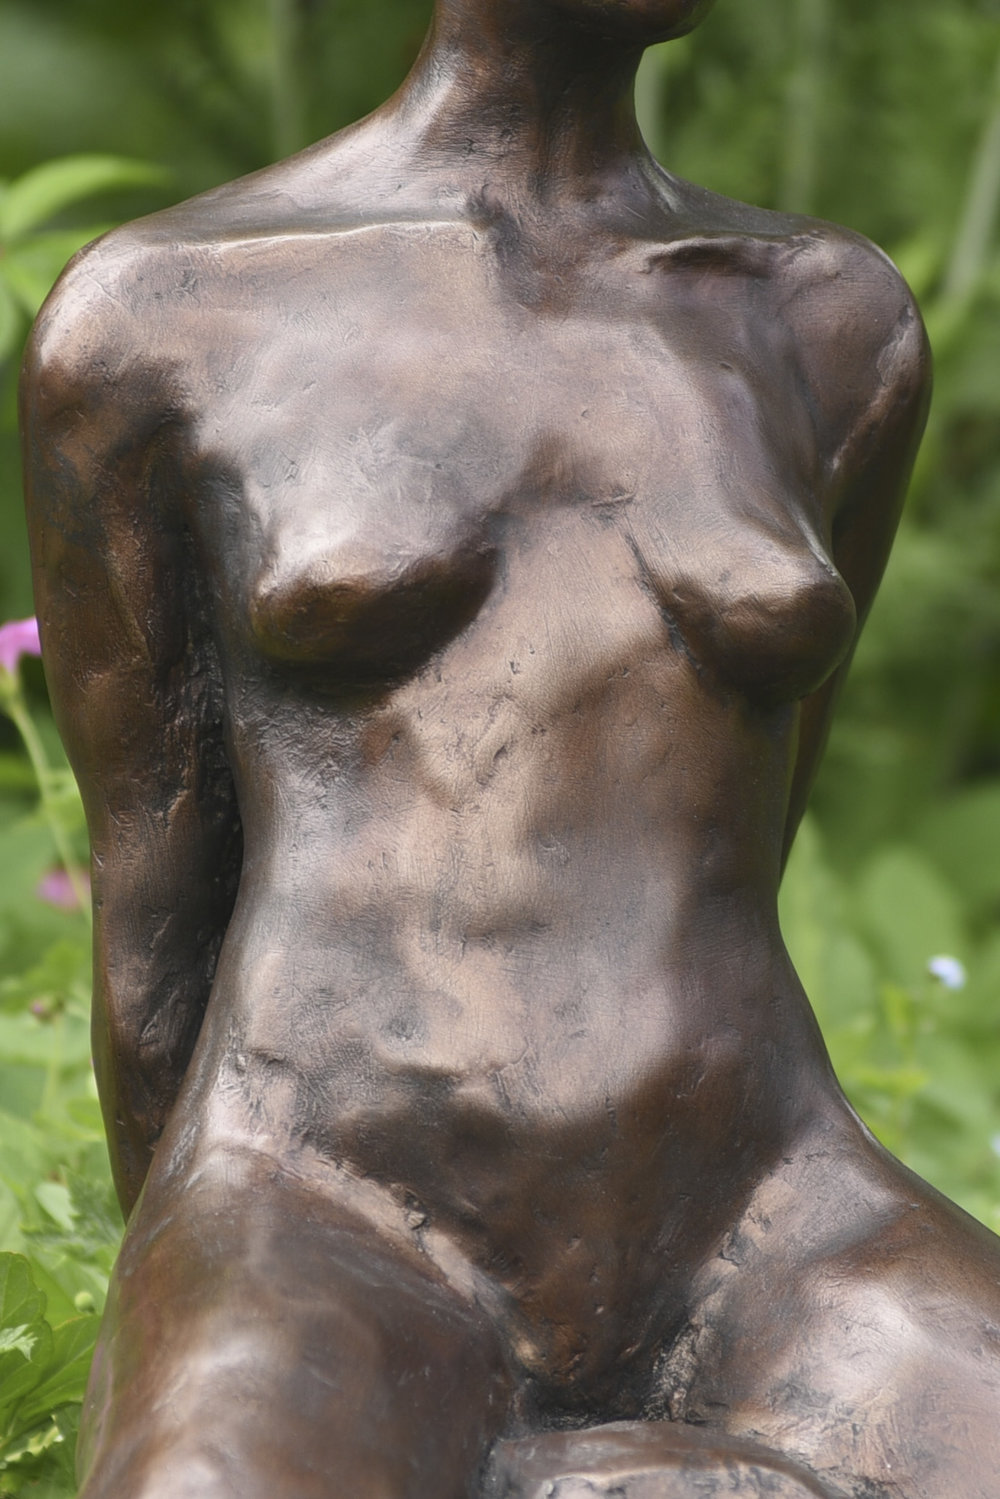 Bronze statue torso showing detail of patina.jpg